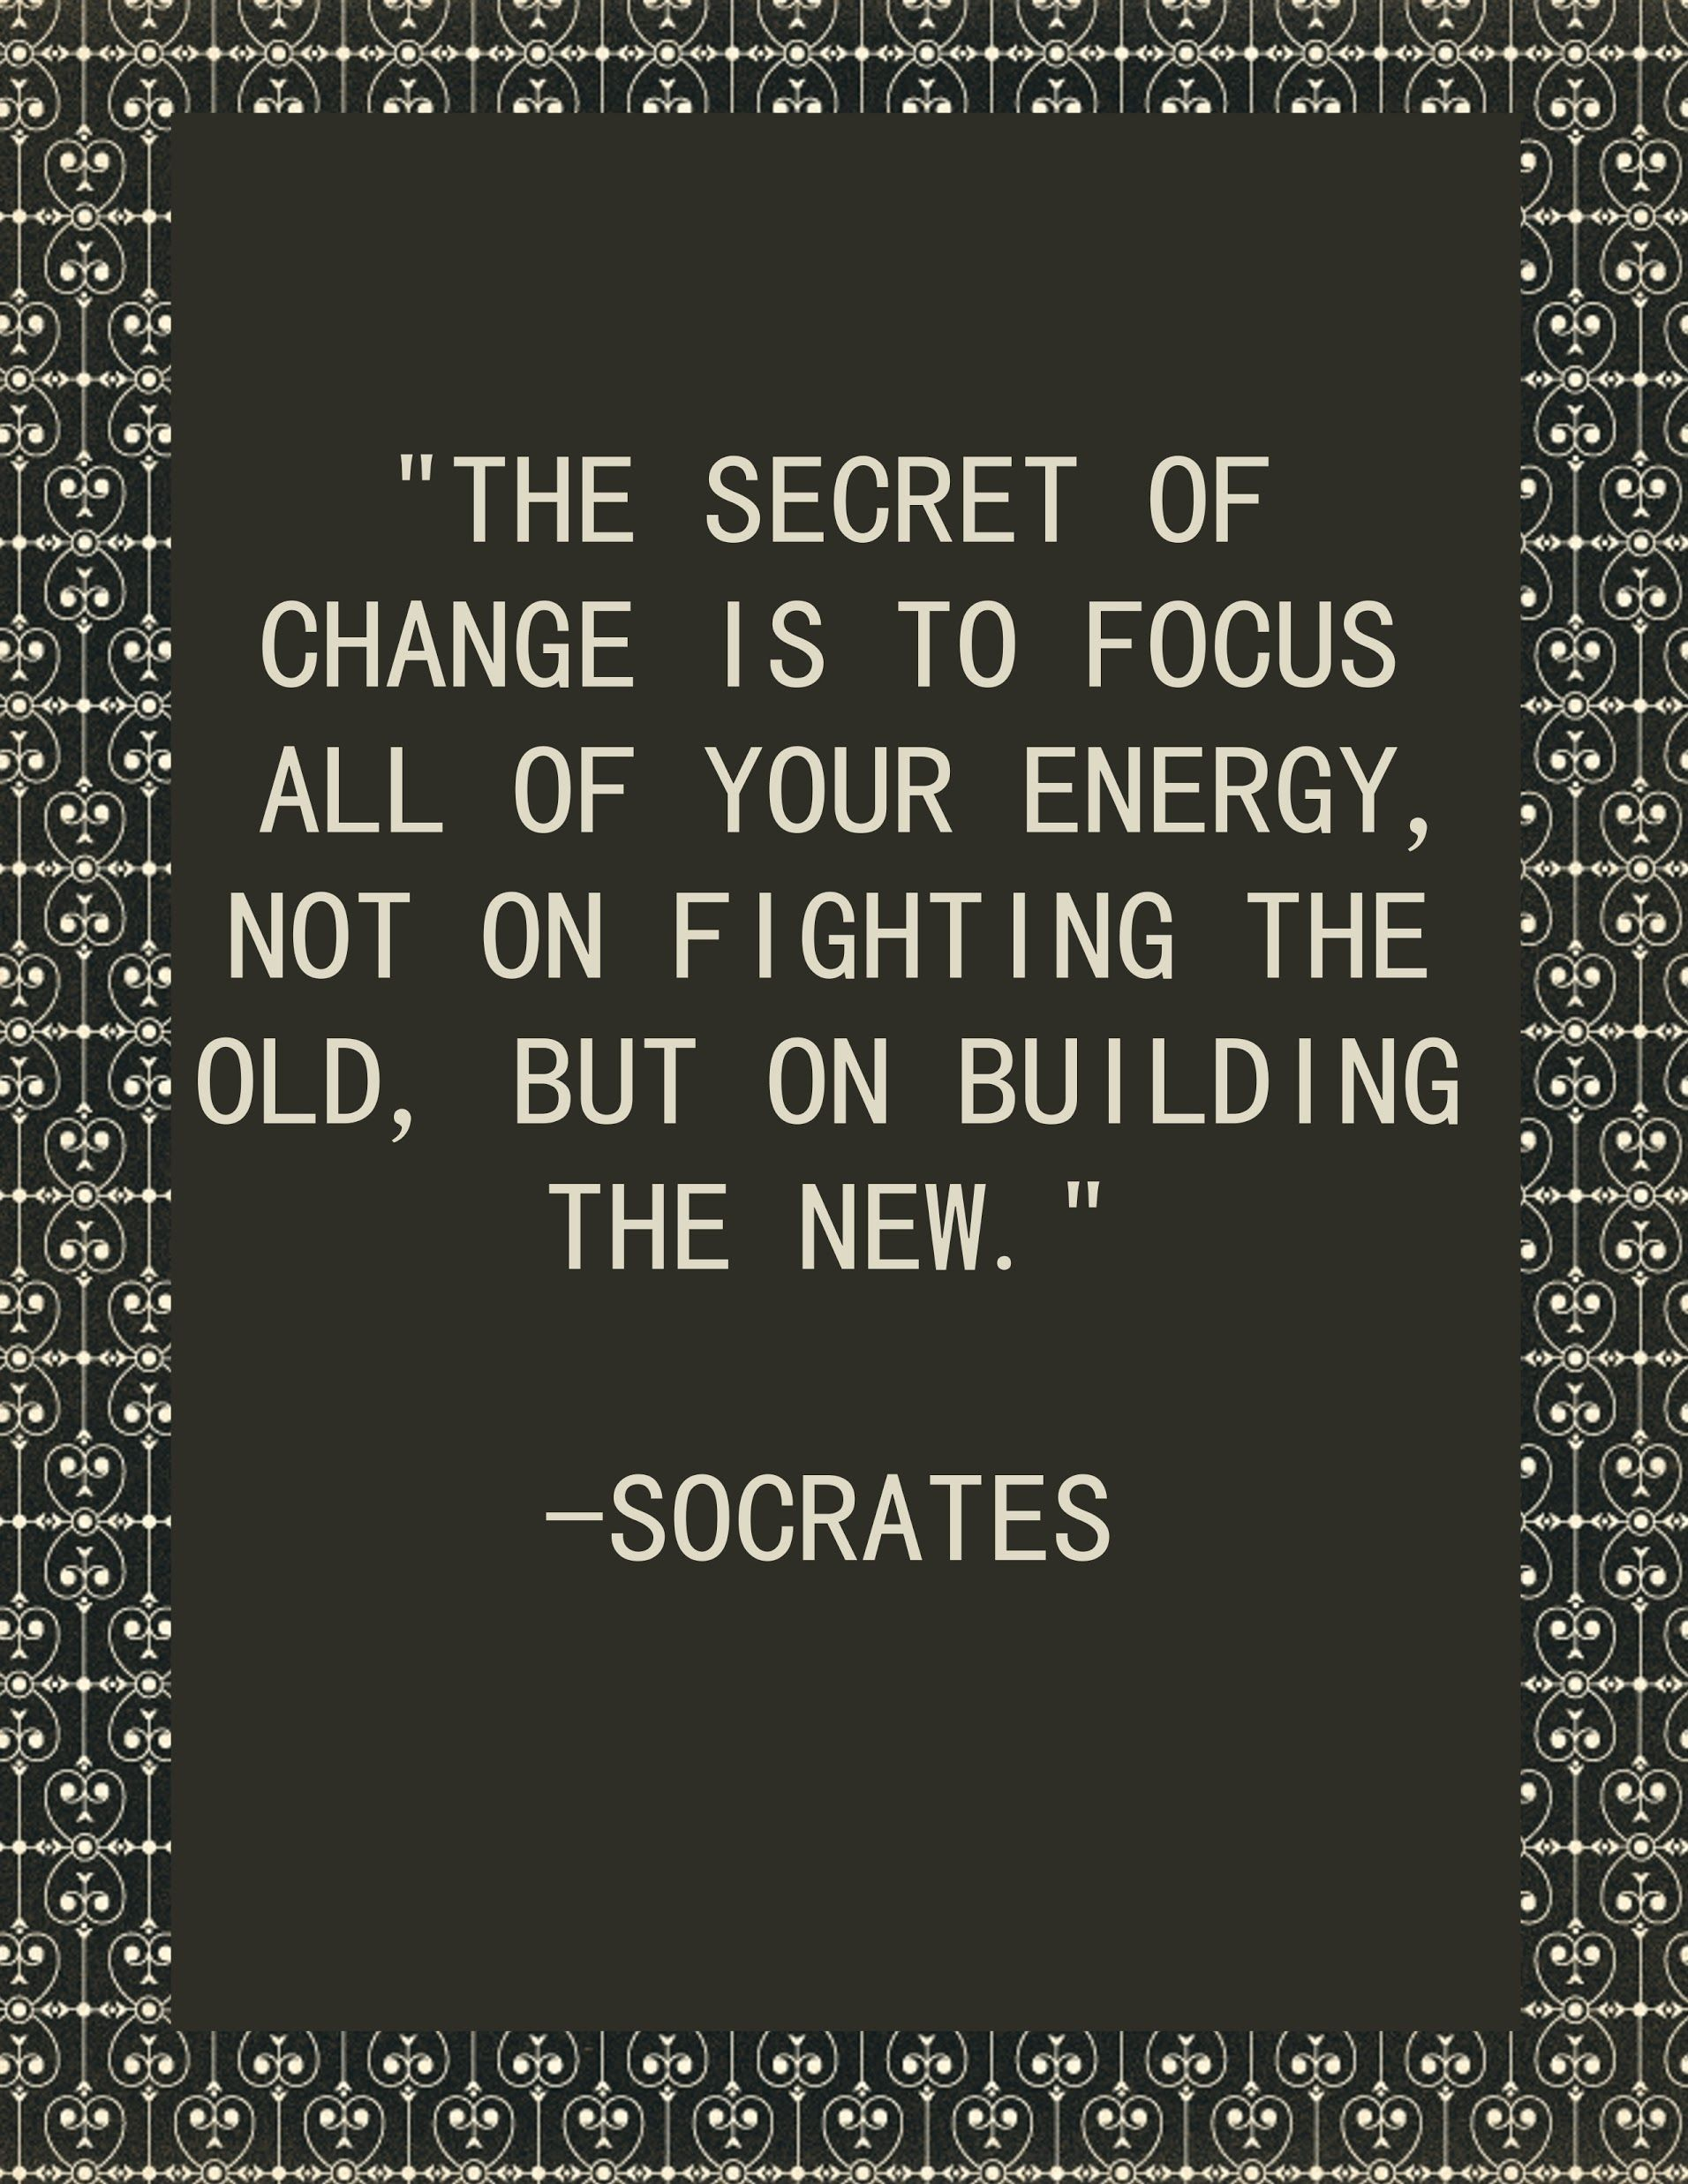 Socrates Quote On Life Motivation: The Secret Of Change Is To Focus All Of  Your Energy, Not On Fighting The Old, But On Building The New.